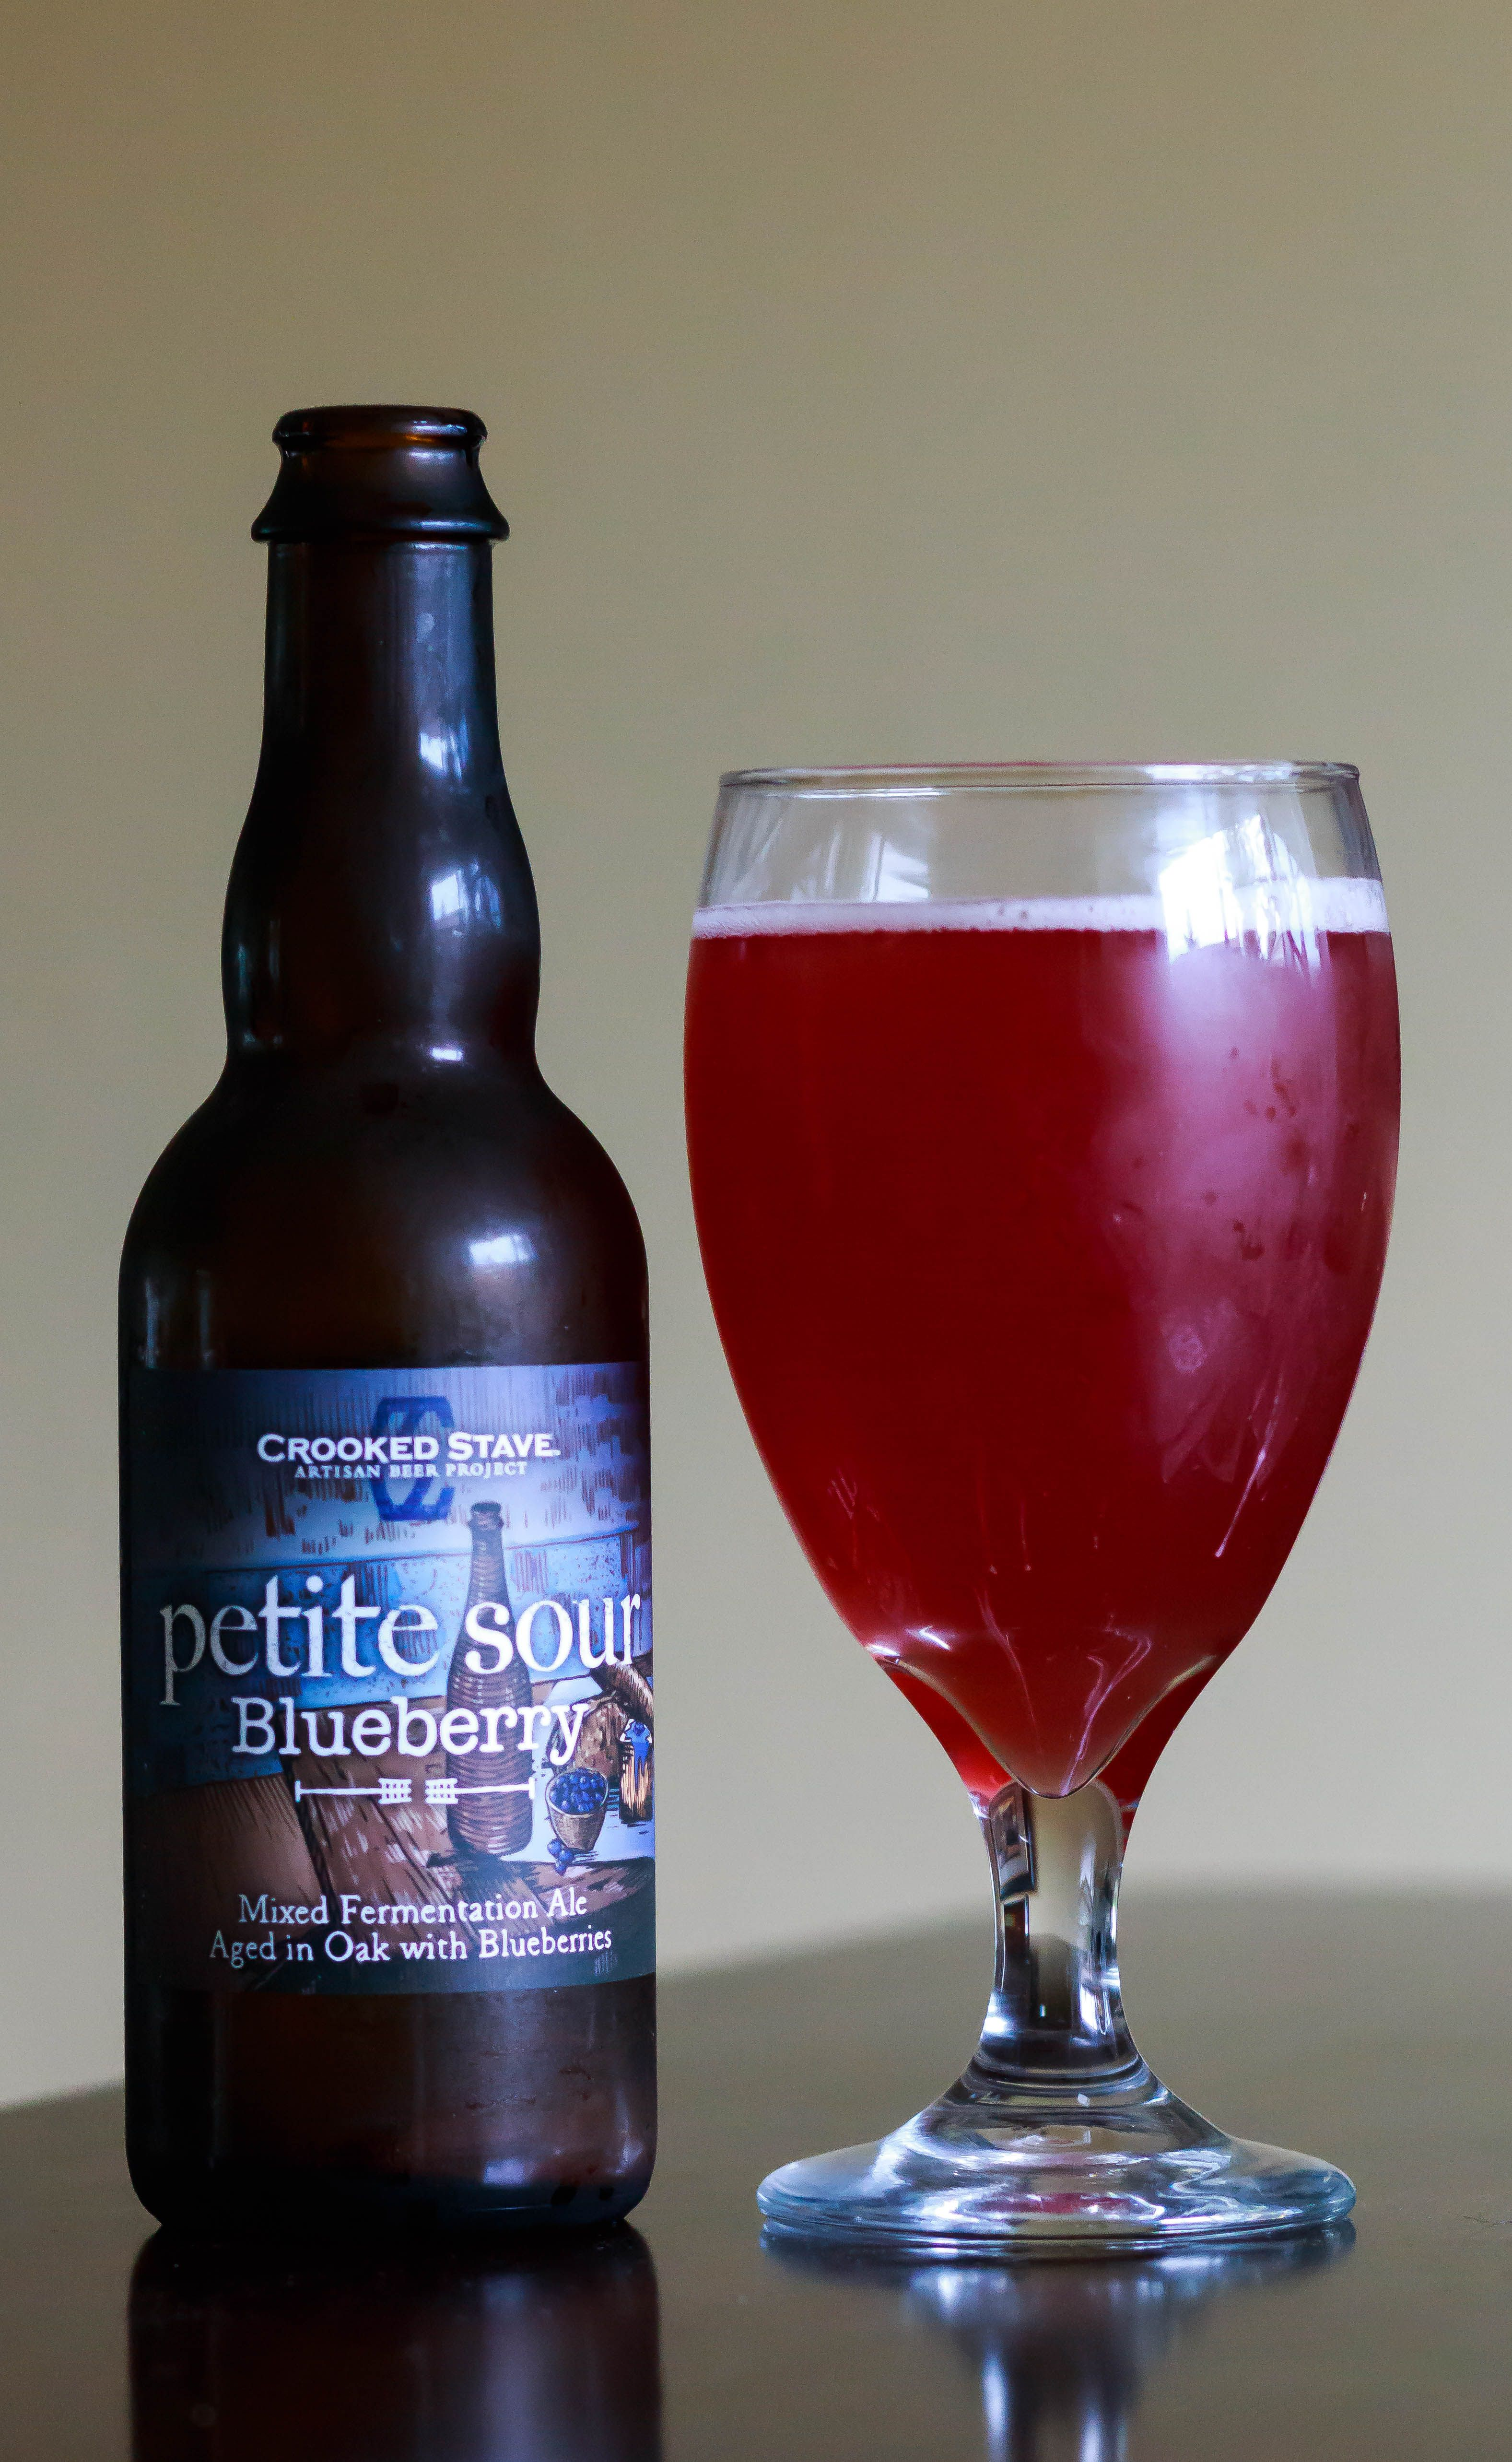 Blueberry Petite Sour Crooked Stave Brewery Wild Ale 5 Abv A Sour Blueberry This One Must Have Com Wonka Chocolate Factory Wonka Chocolate Mad Hippie